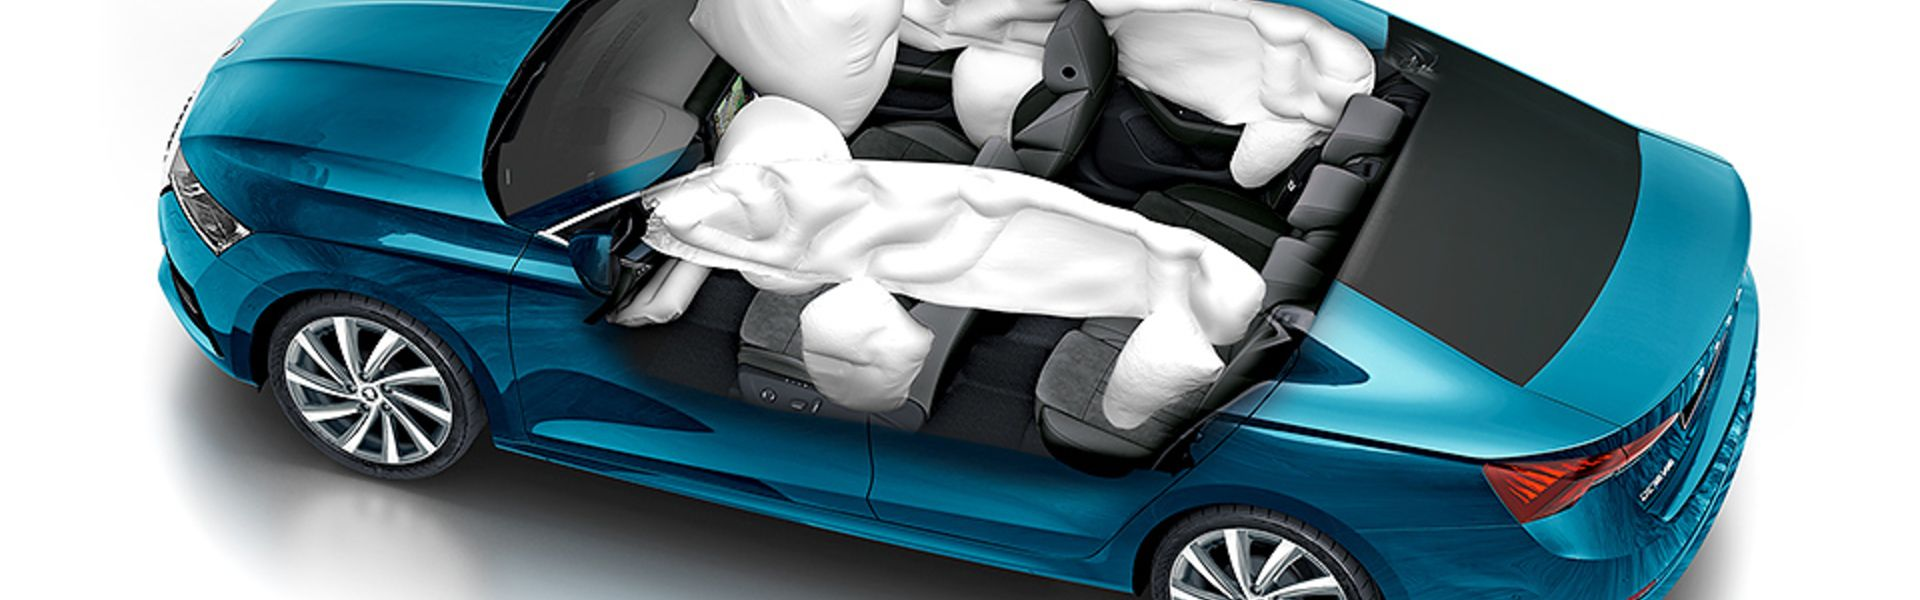 ŠKODA OCTAVIA Best AIRBAGS Safety